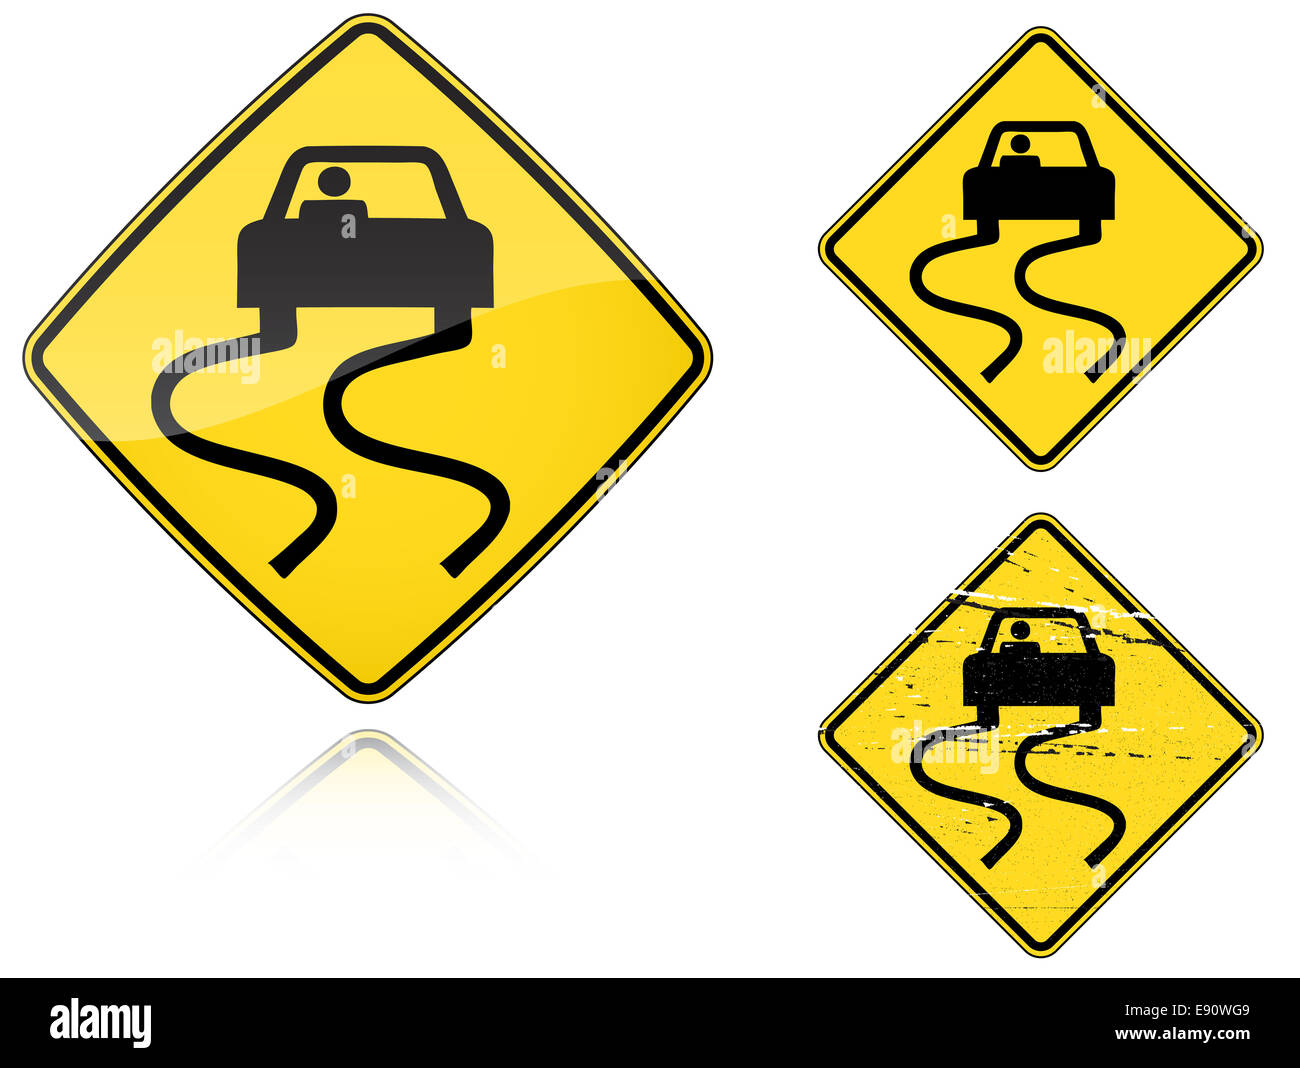 Variants a Slippery when wet - road sign Stock Photo